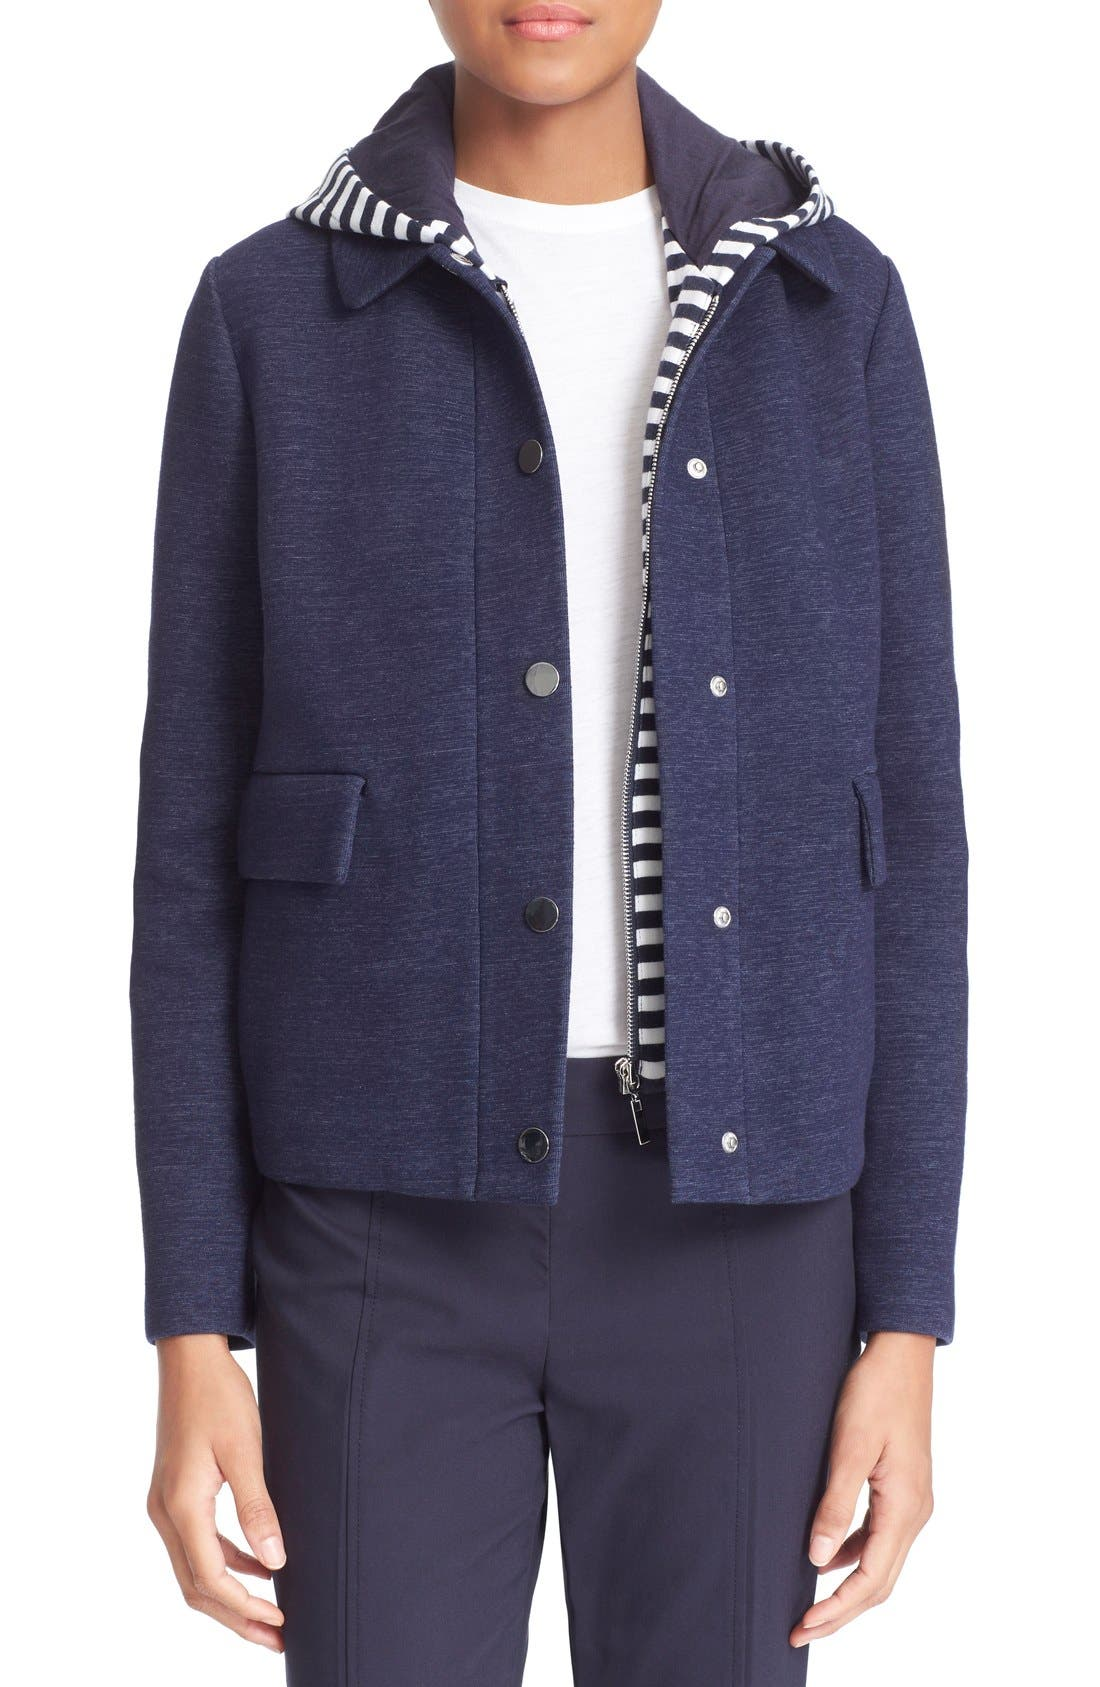 Alternate Image 1 Selected - Tory Burch Hooded Jacket